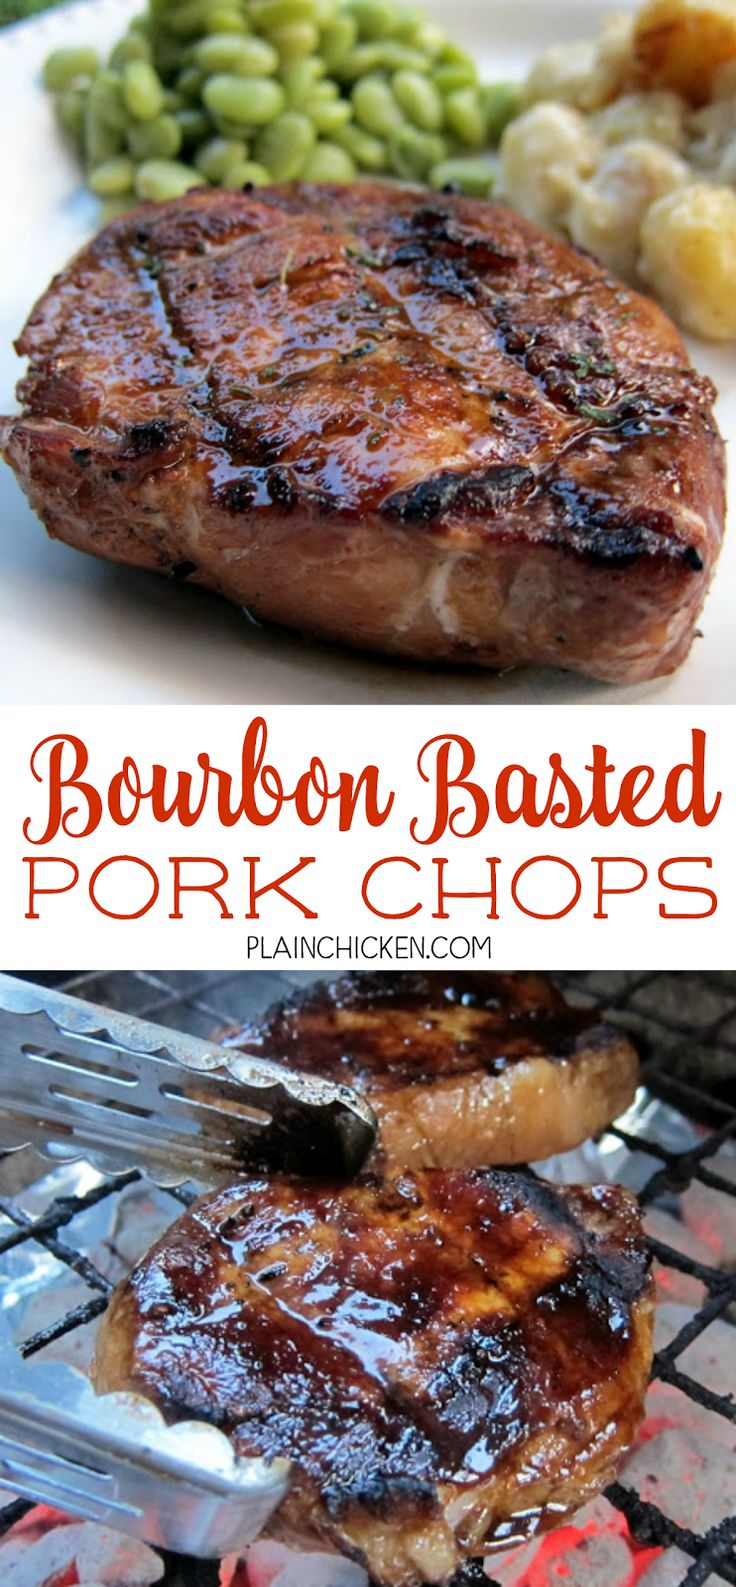 Bourbon Basted Pork Chops - pork chops basted in a quick homemade bourbon sauce - lemon juice, soy sauce, Worcestershire sauce, bourbon, onion, hot sauce and pepper. So easy and really good. A favorite at our BBQ parties!